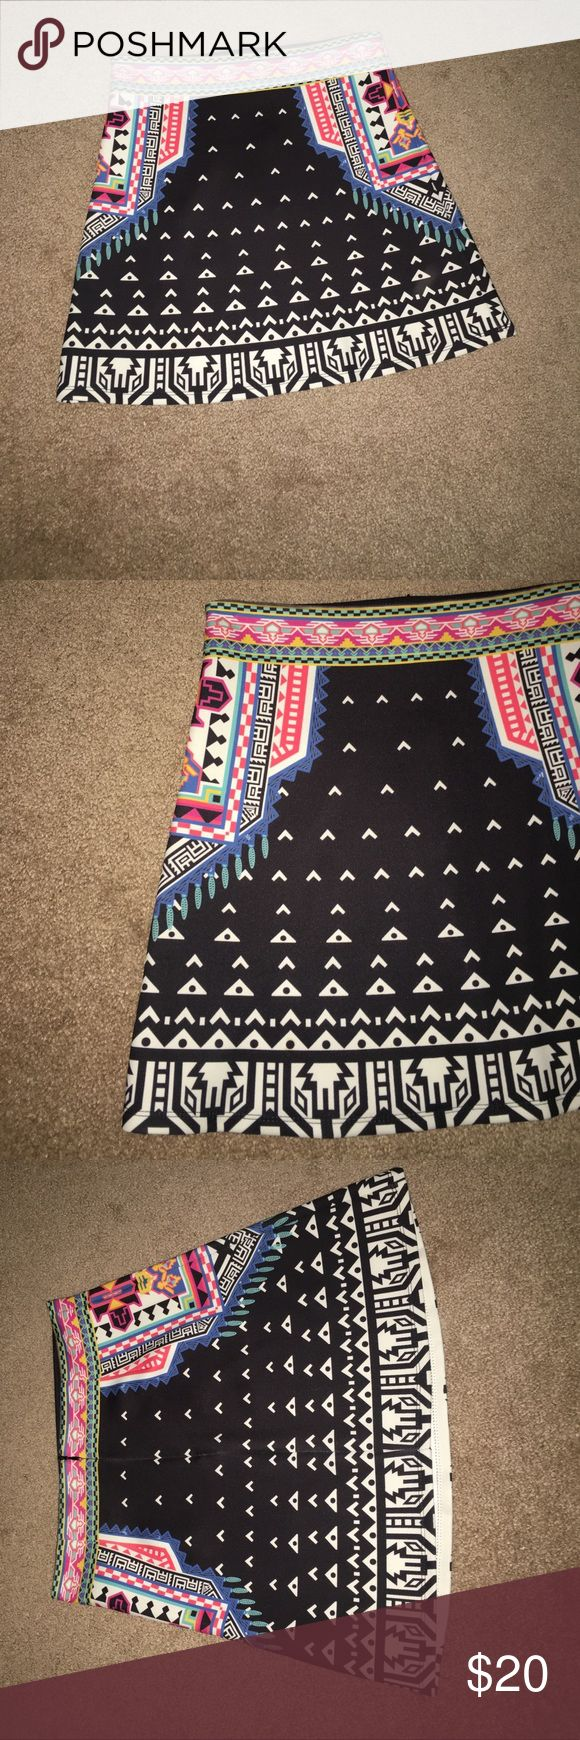 Aztec print skirt Gorgeous Aztec print skirt- will carrot reasonable offers! It is a size medium, but fits smaller. Worn one afternoon. Flying Tomato Skirts Mini